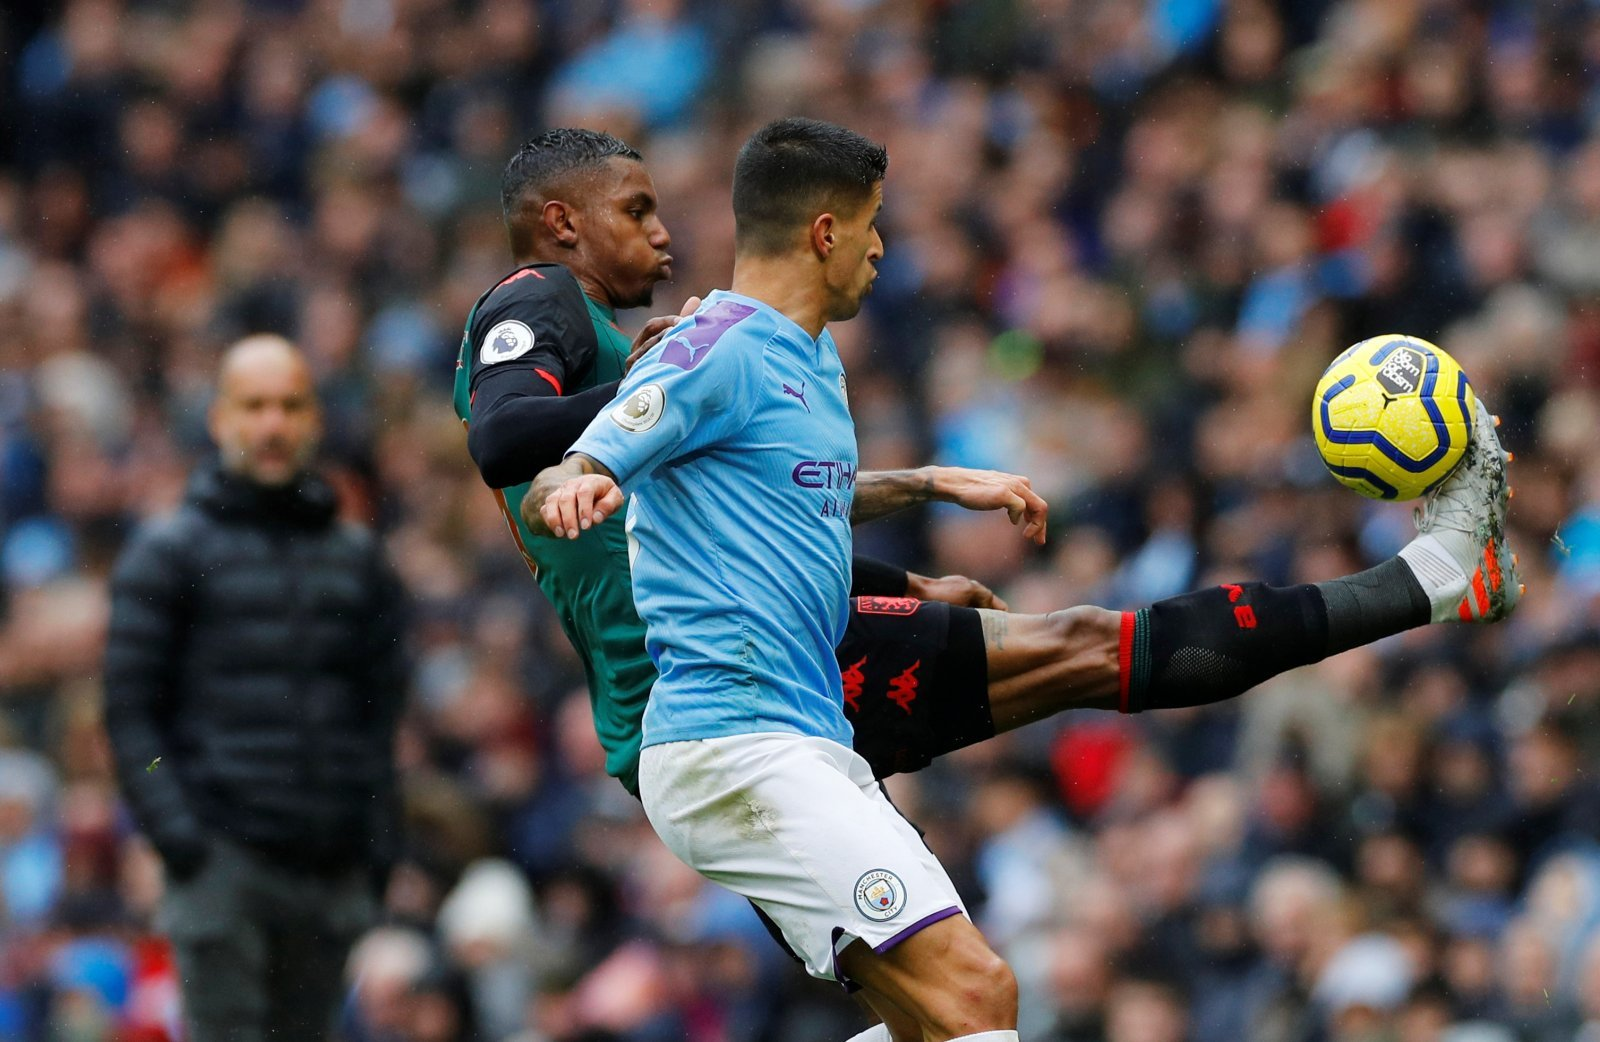 Aston Villa: Fans not happy with Wesley's performance against Manchester City